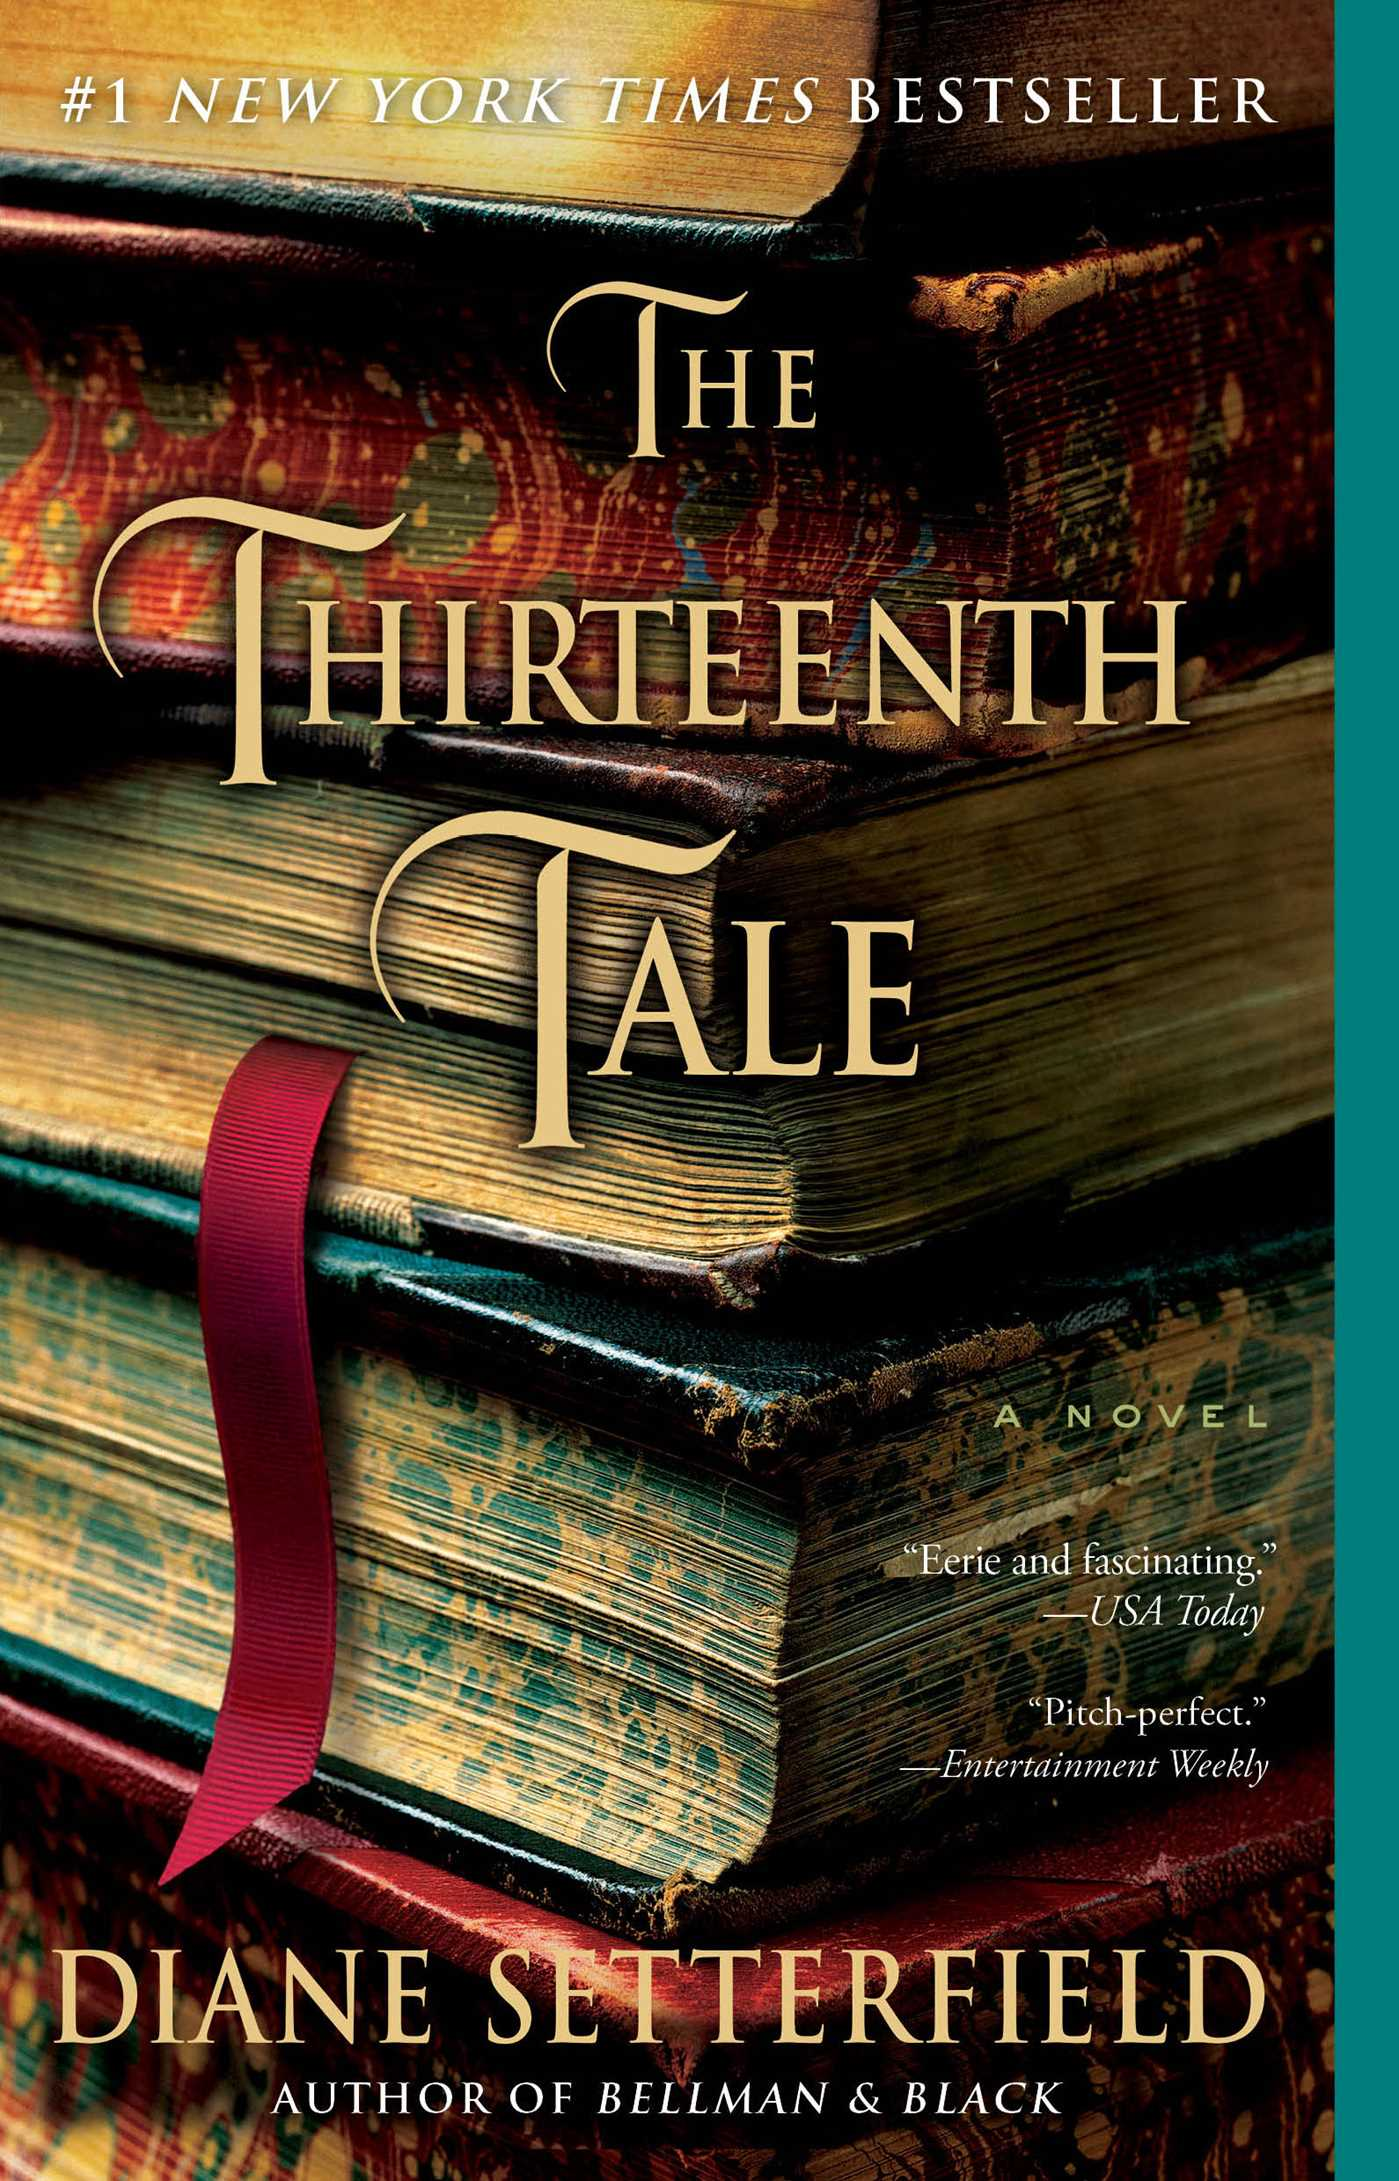 The thirteenth tale 9781416540533 hr